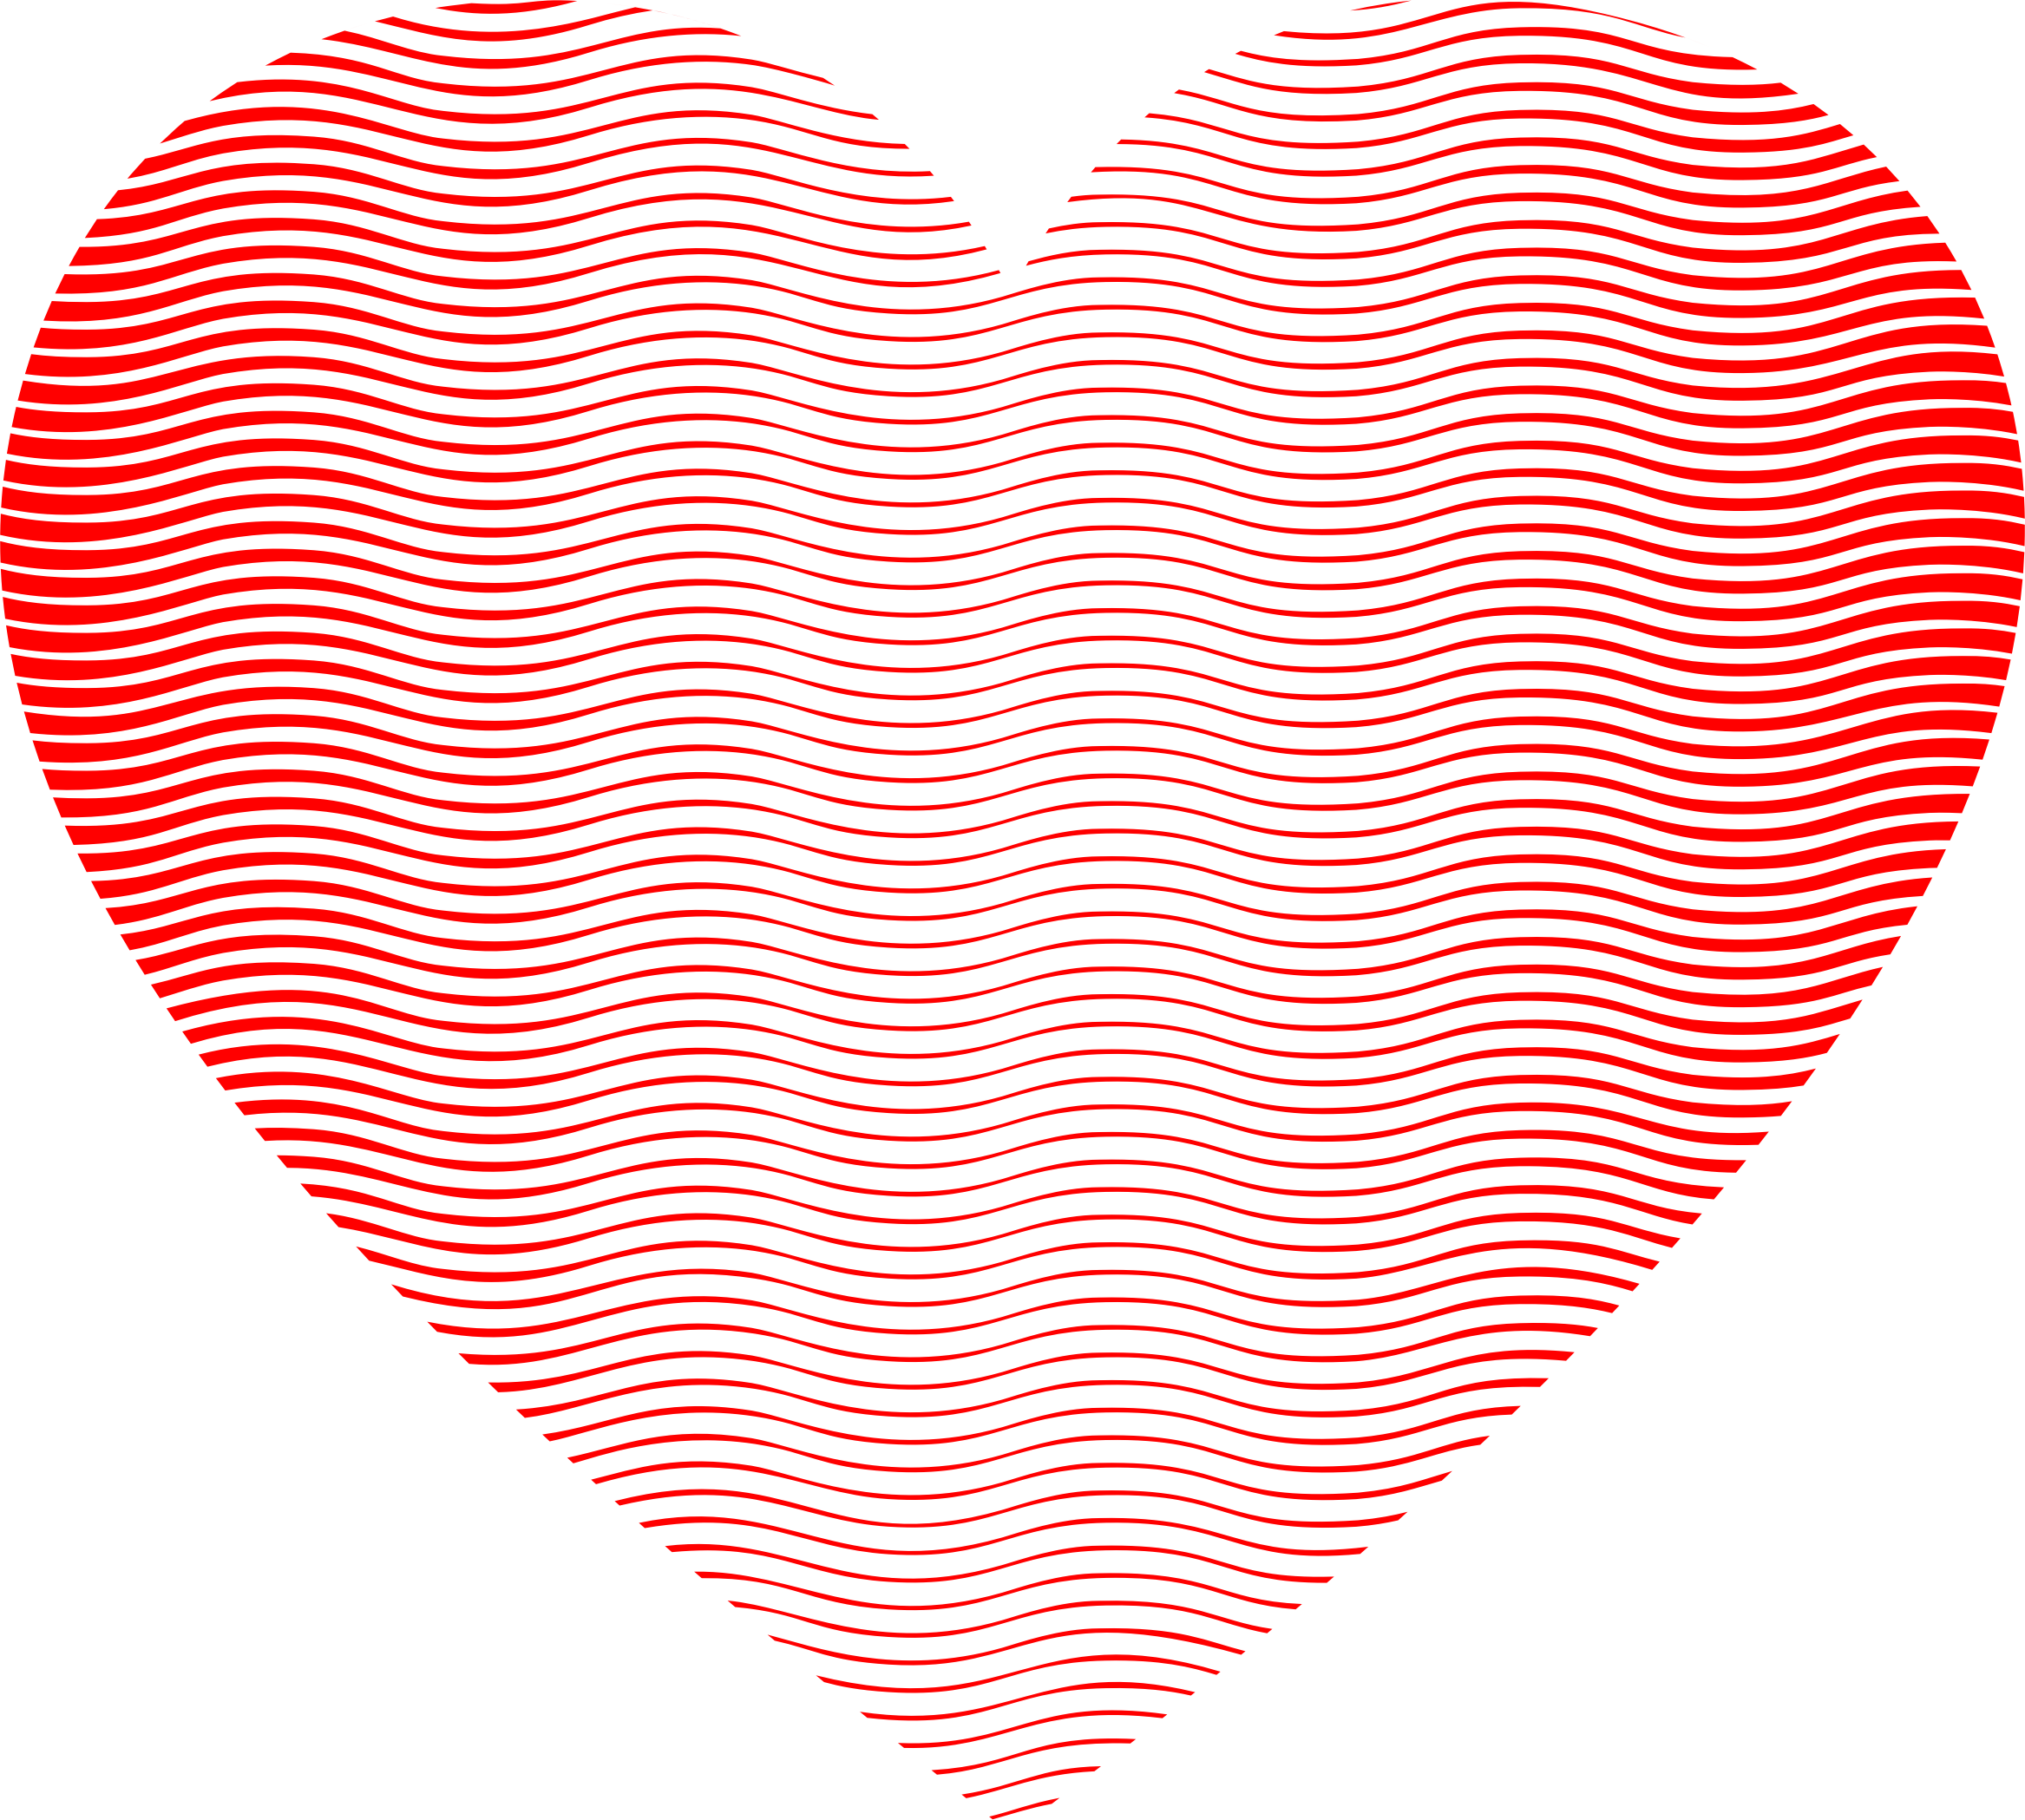 Wavy Heart Line Art 2 by GDJ